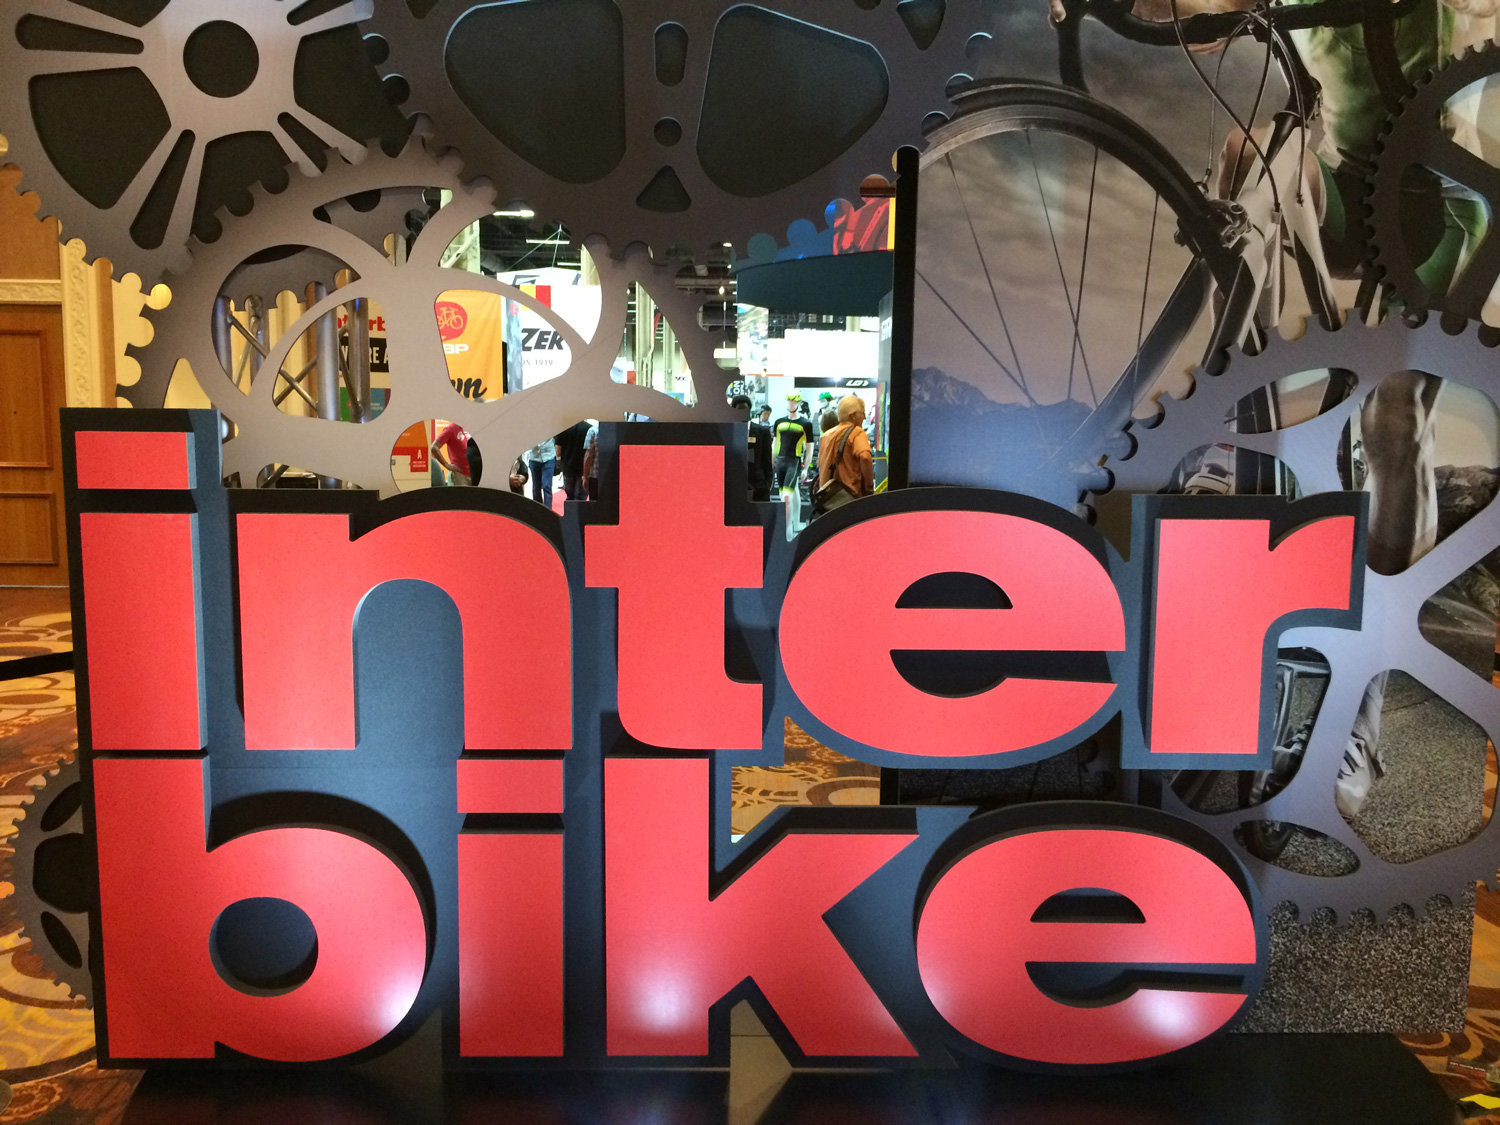 Interbike 2015 logo sign